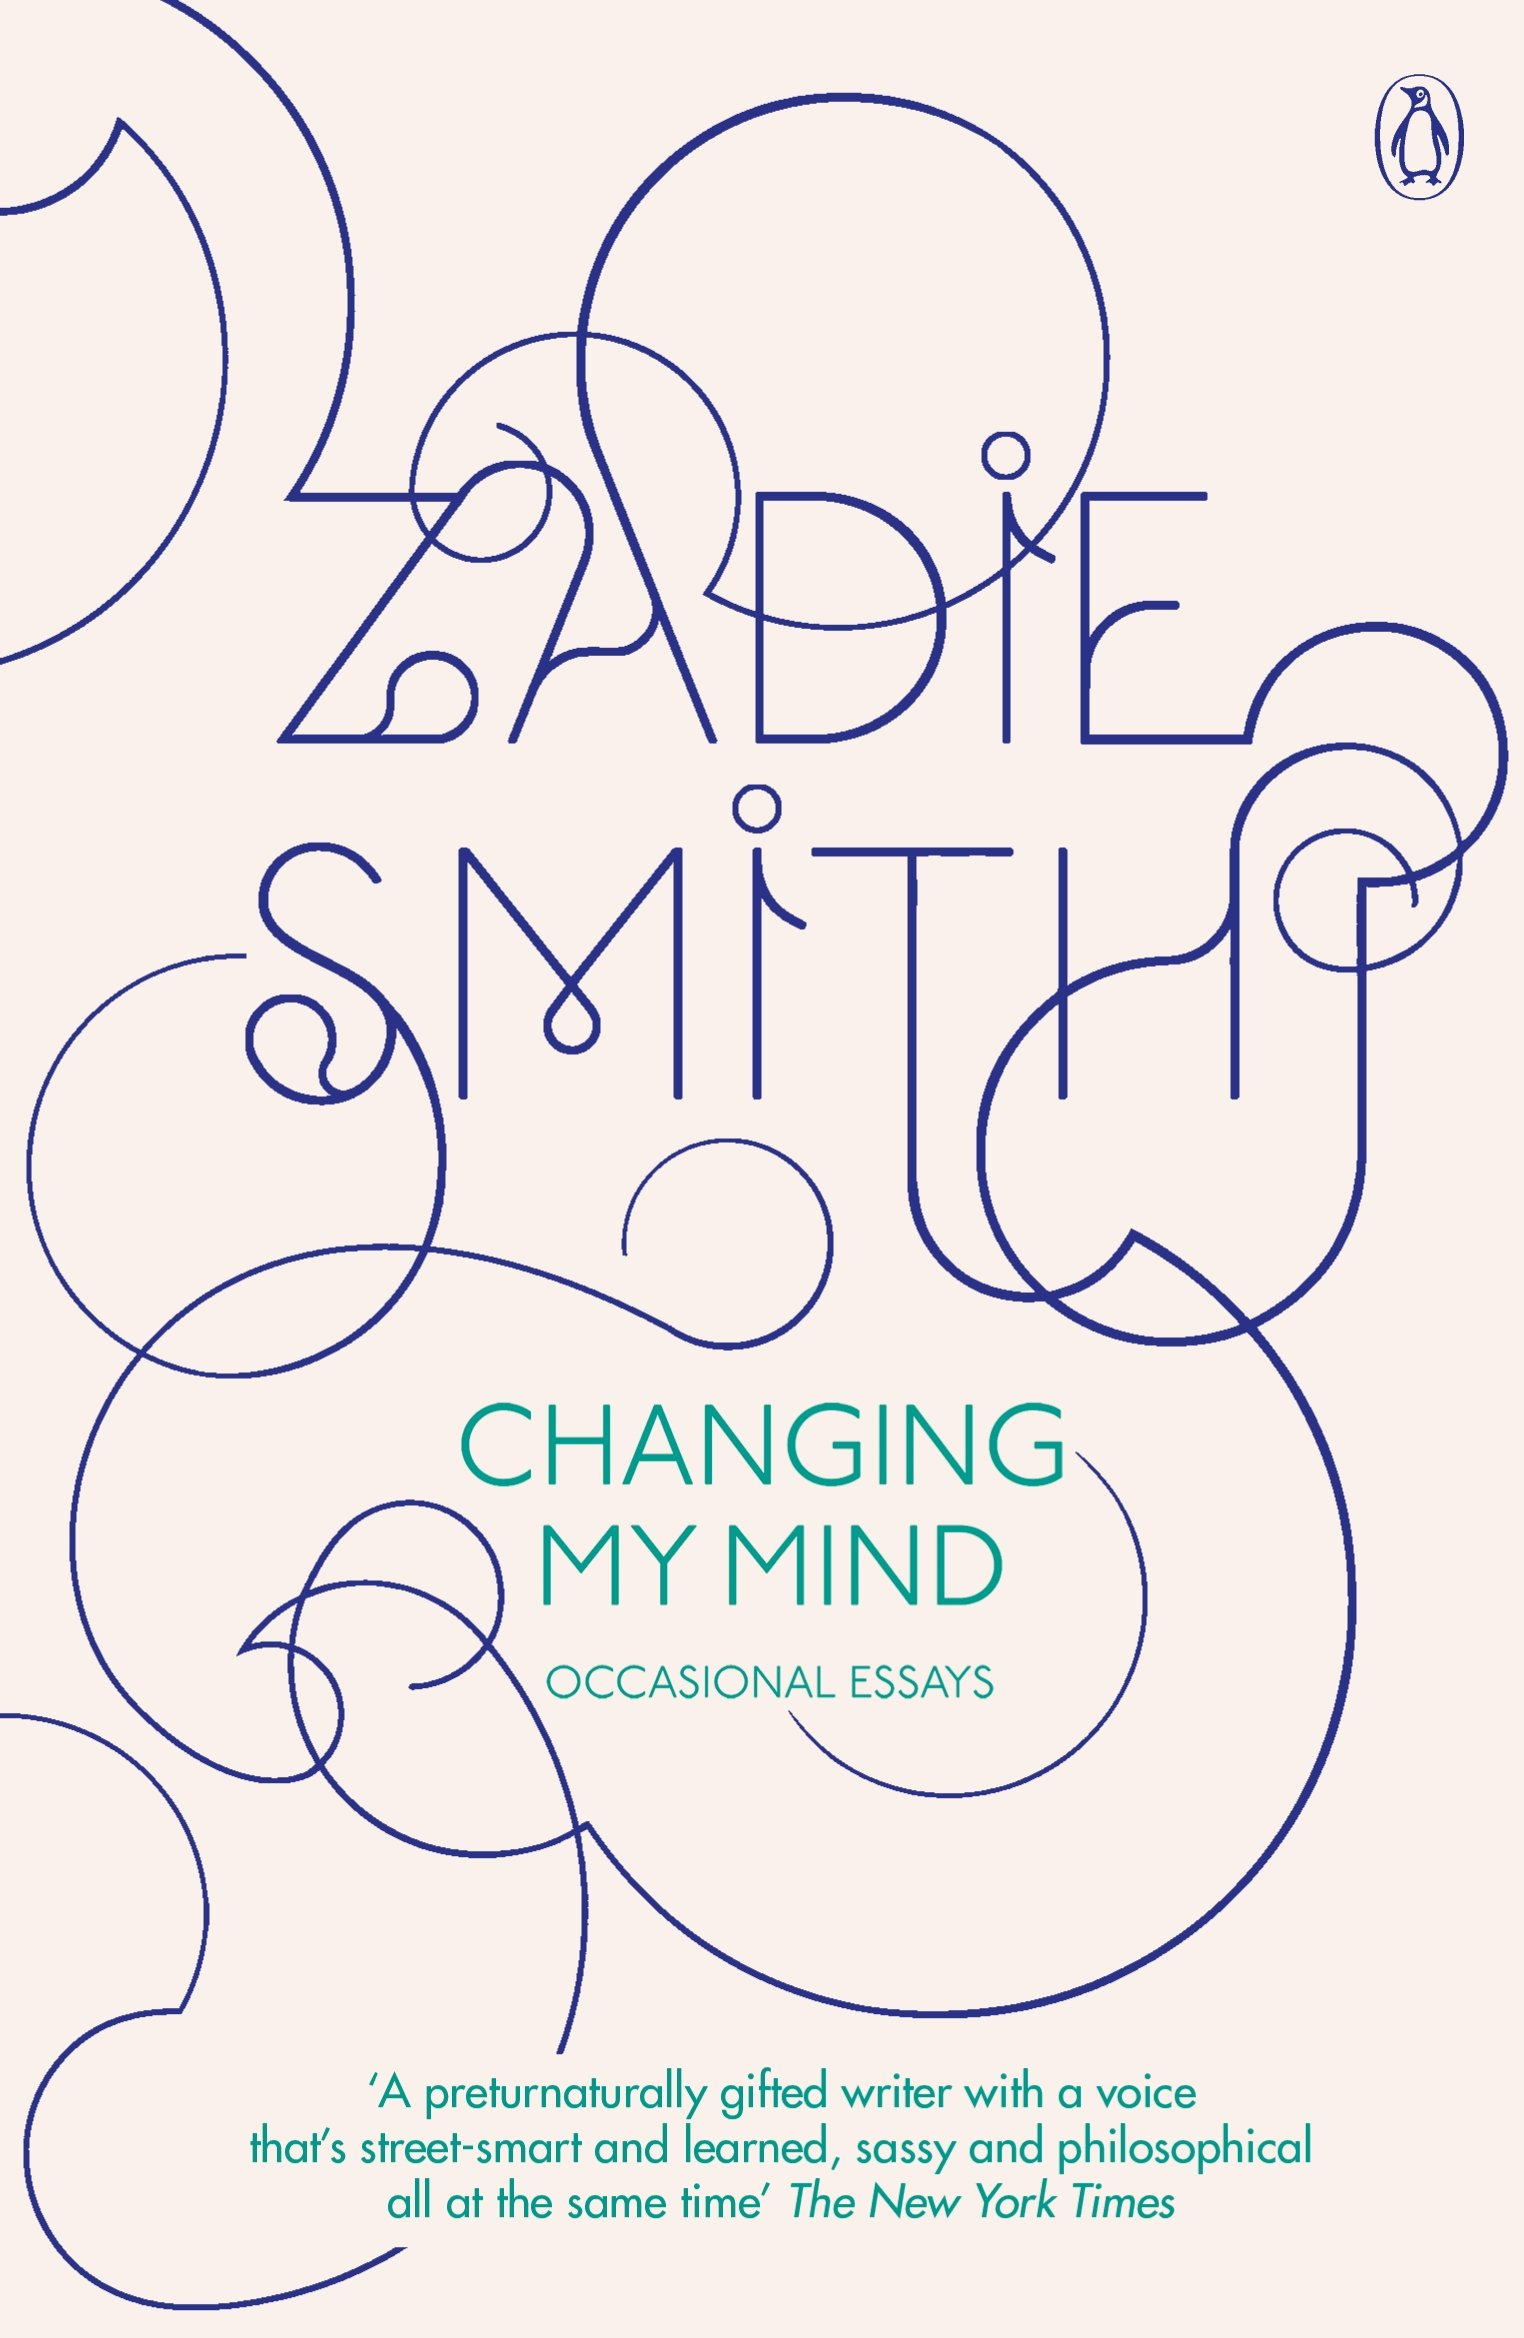 changing my mind occasional essays co uk zadie smith changing my mind occasional essays co uk zadie smith 9780141019468 books